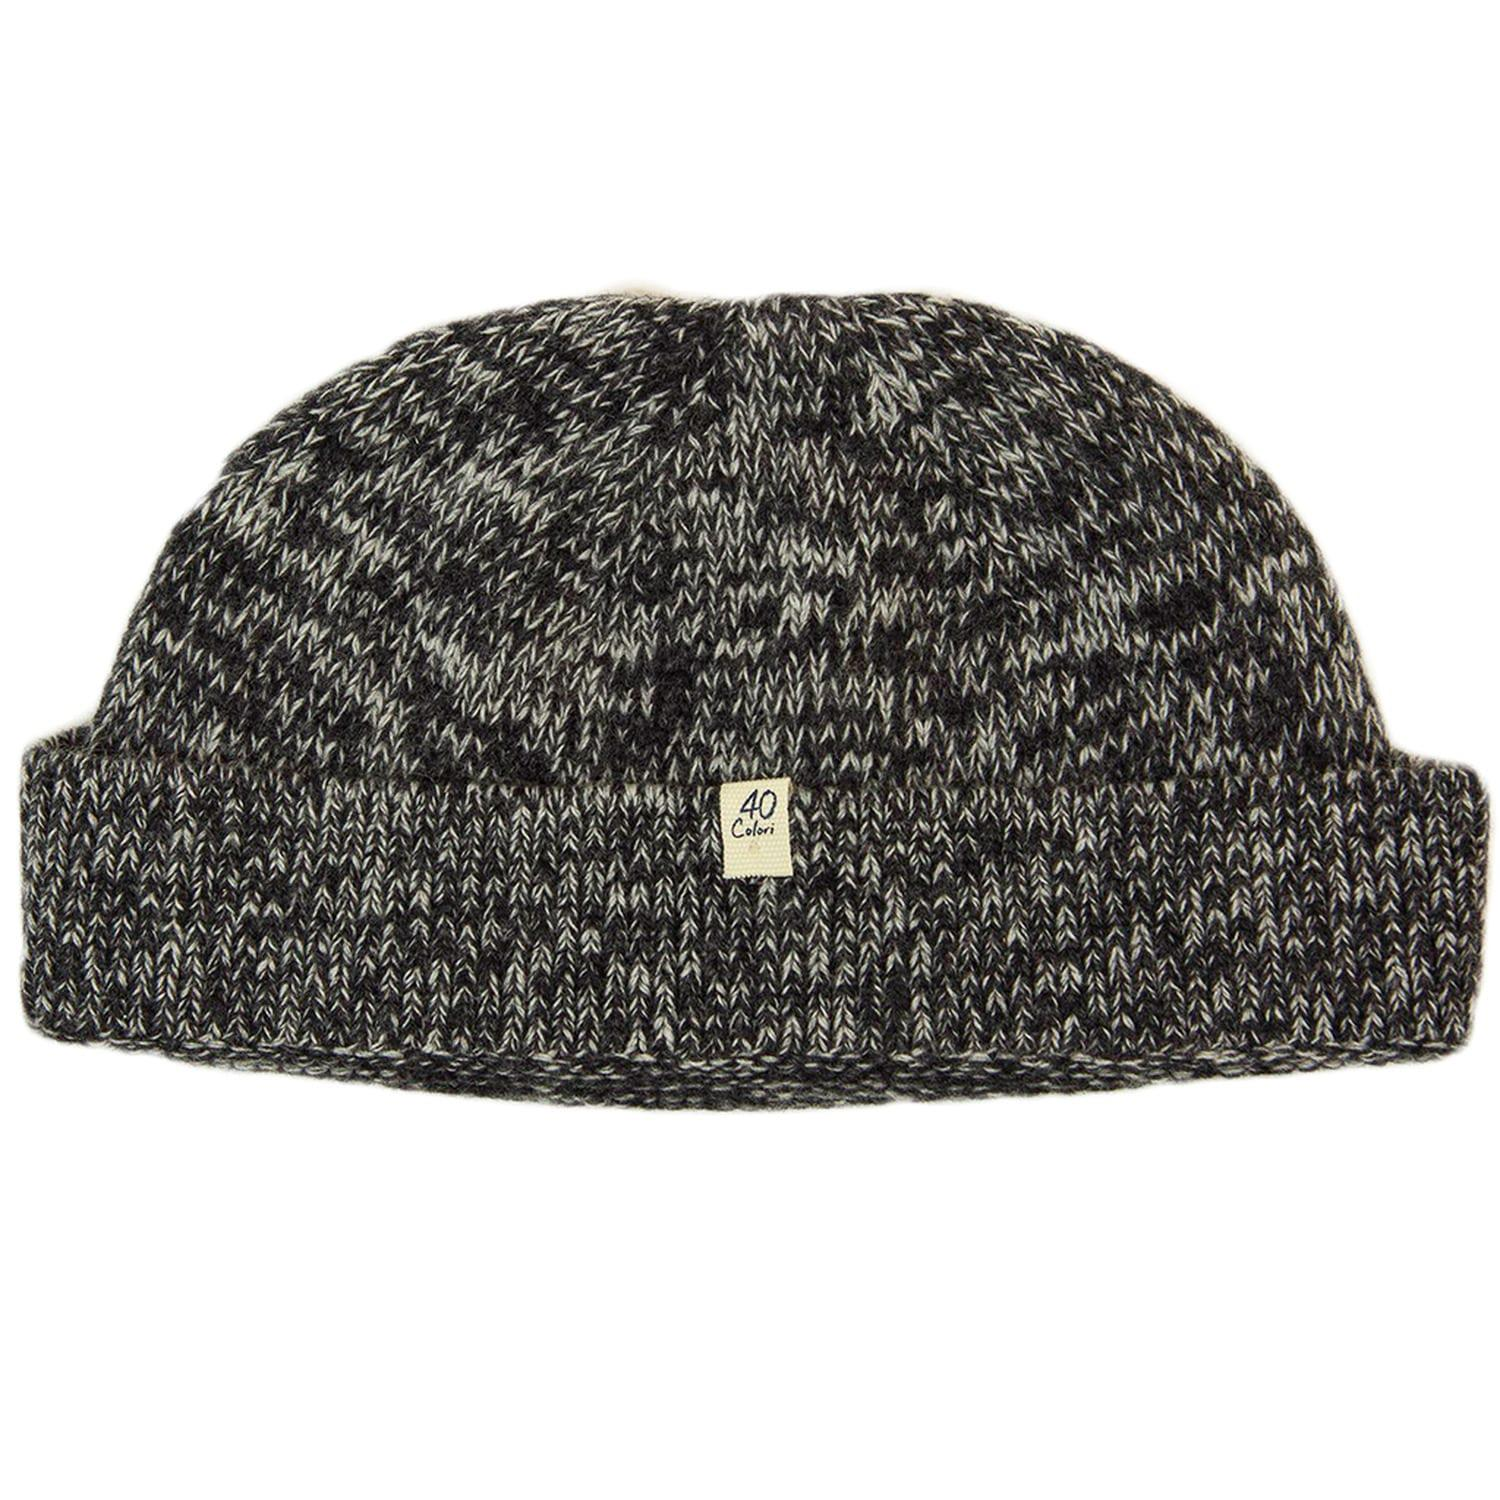 c5121f9011f 40 Colori. Men s Gray Charcoal Melange Wool   Cashmere Fisherman Beanie